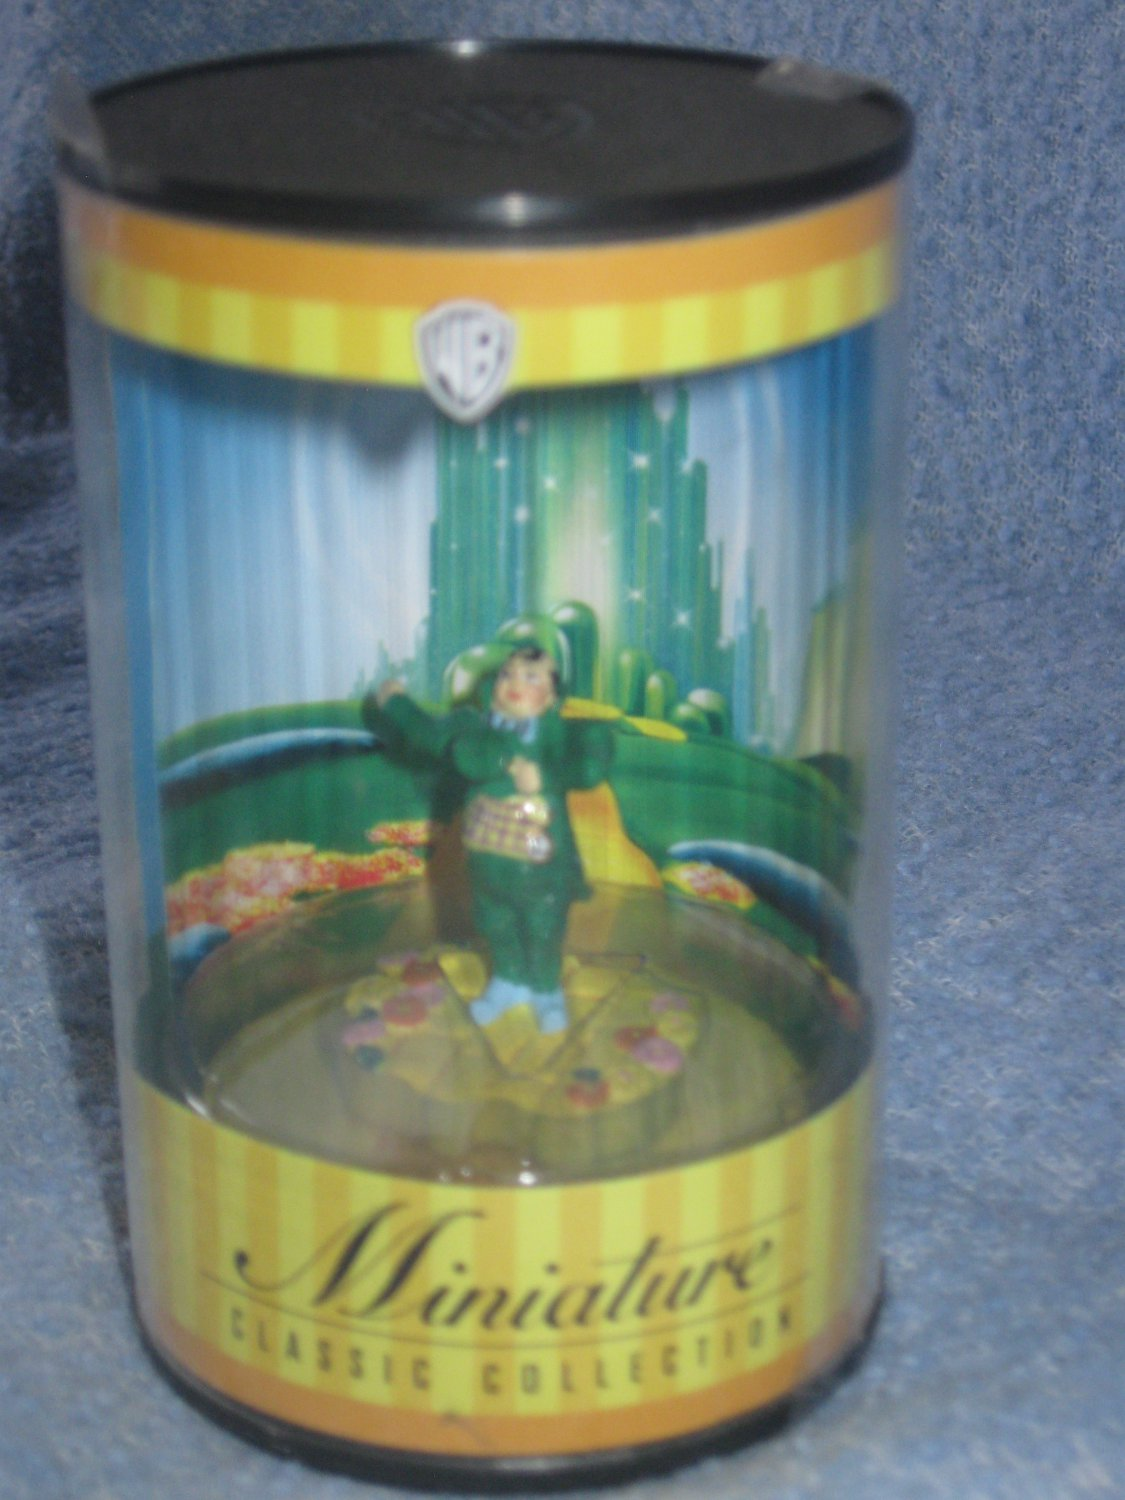 WB Wizard of Oz Miniature Classic Collection - Mayor of Munchkinland